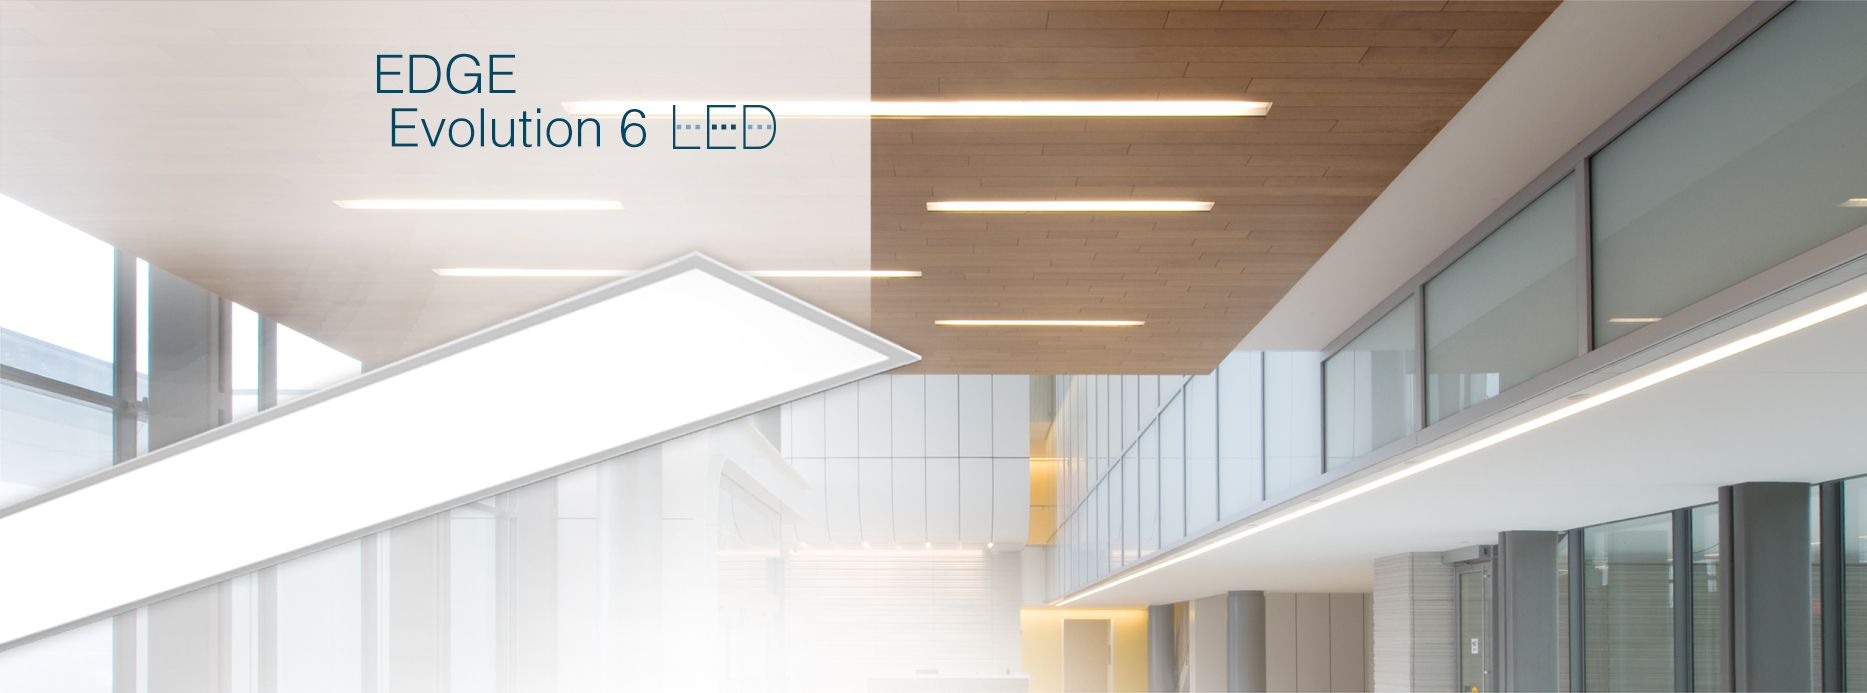 edge evolution 6 by pinnacle architectural lighting 5 aperture